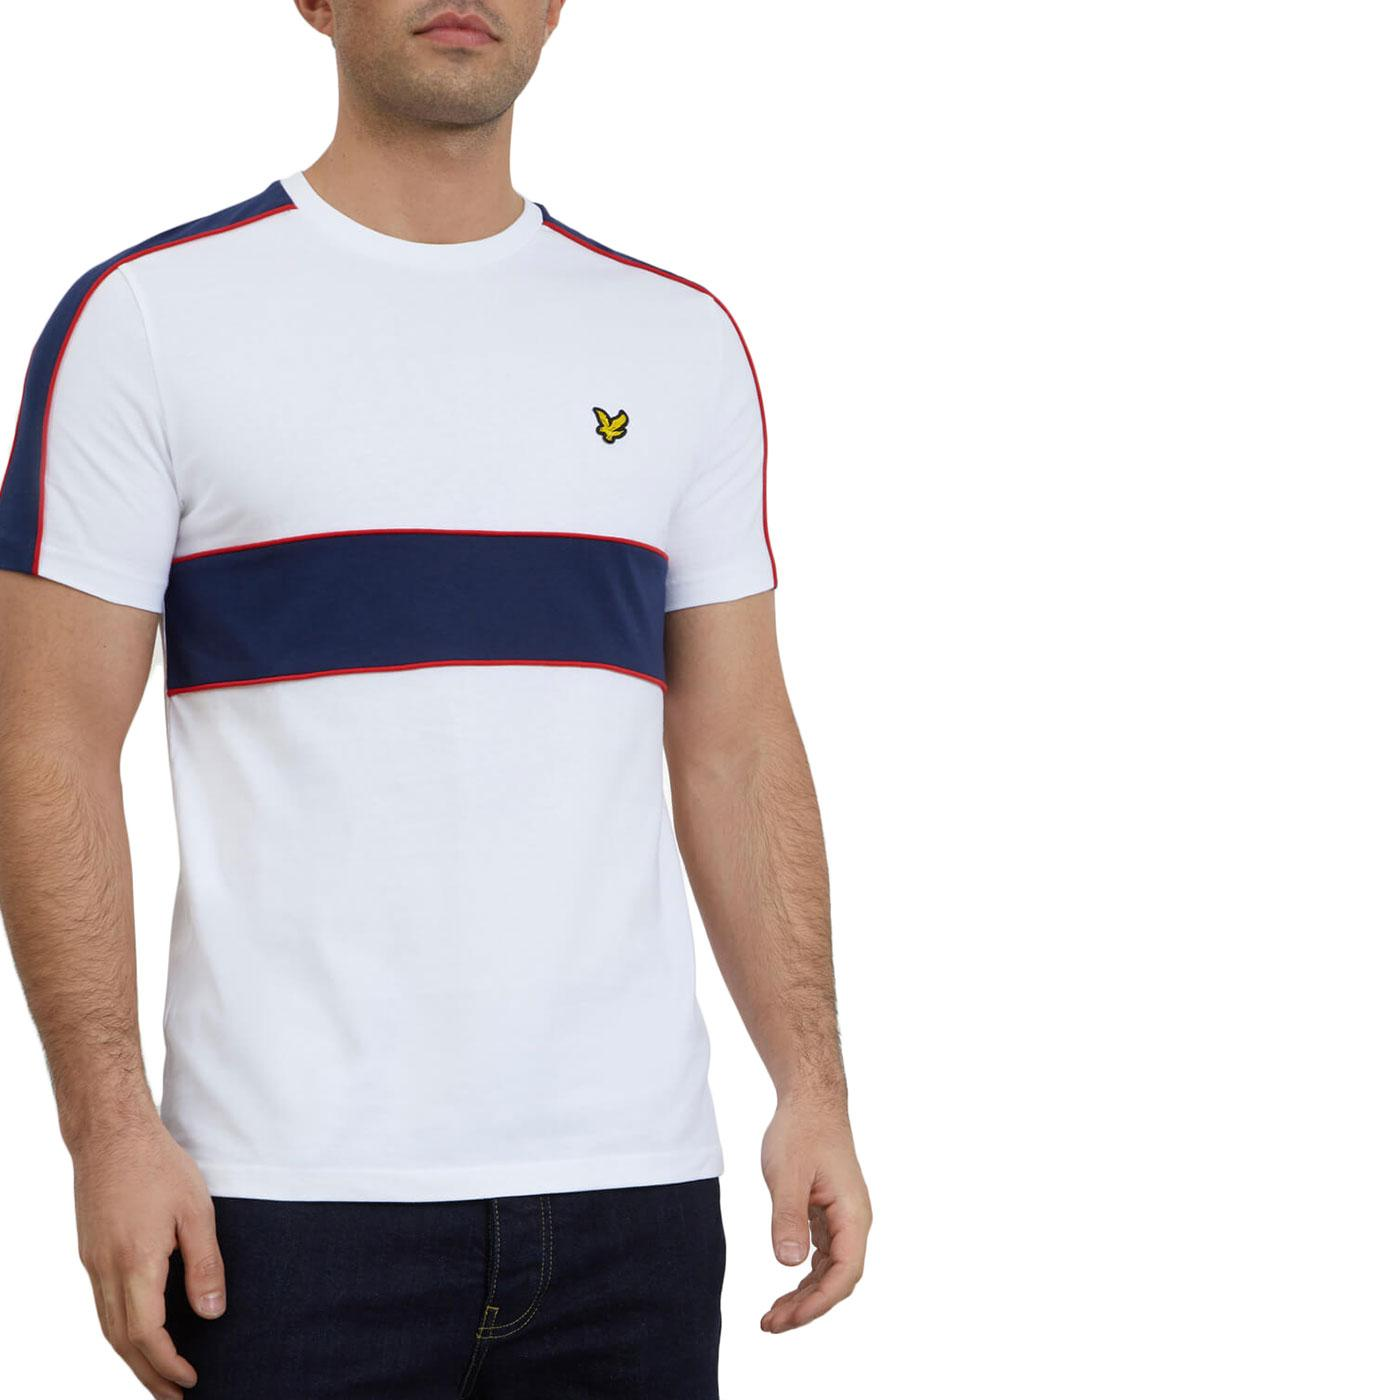 LYLE & SCOTT Cut & Sew Retro 80s T-shirt (White)